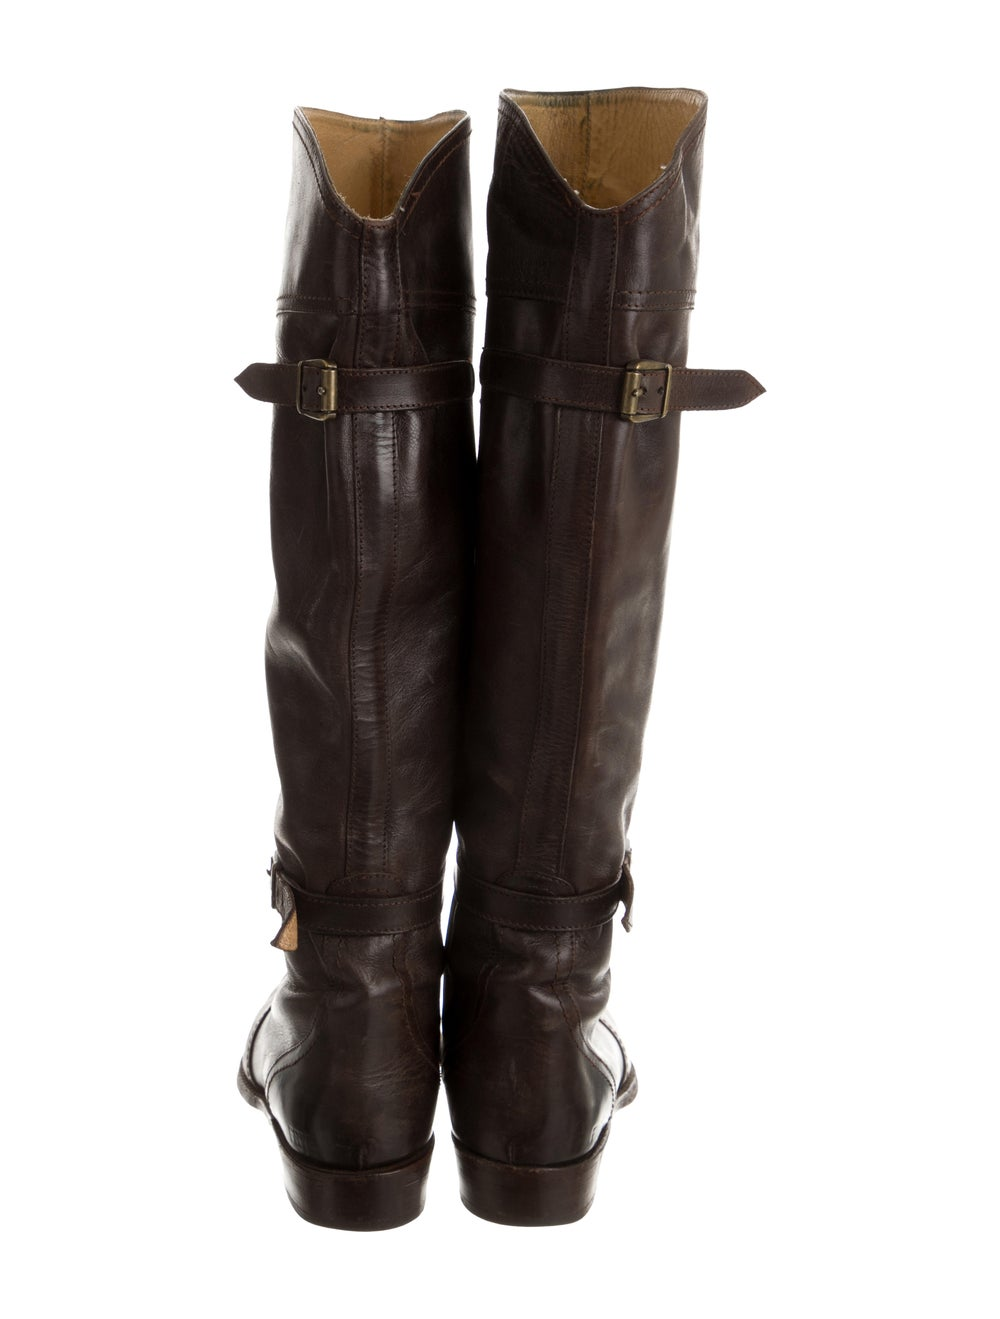 Frye Leather Knee-High Boots Brown - image 4